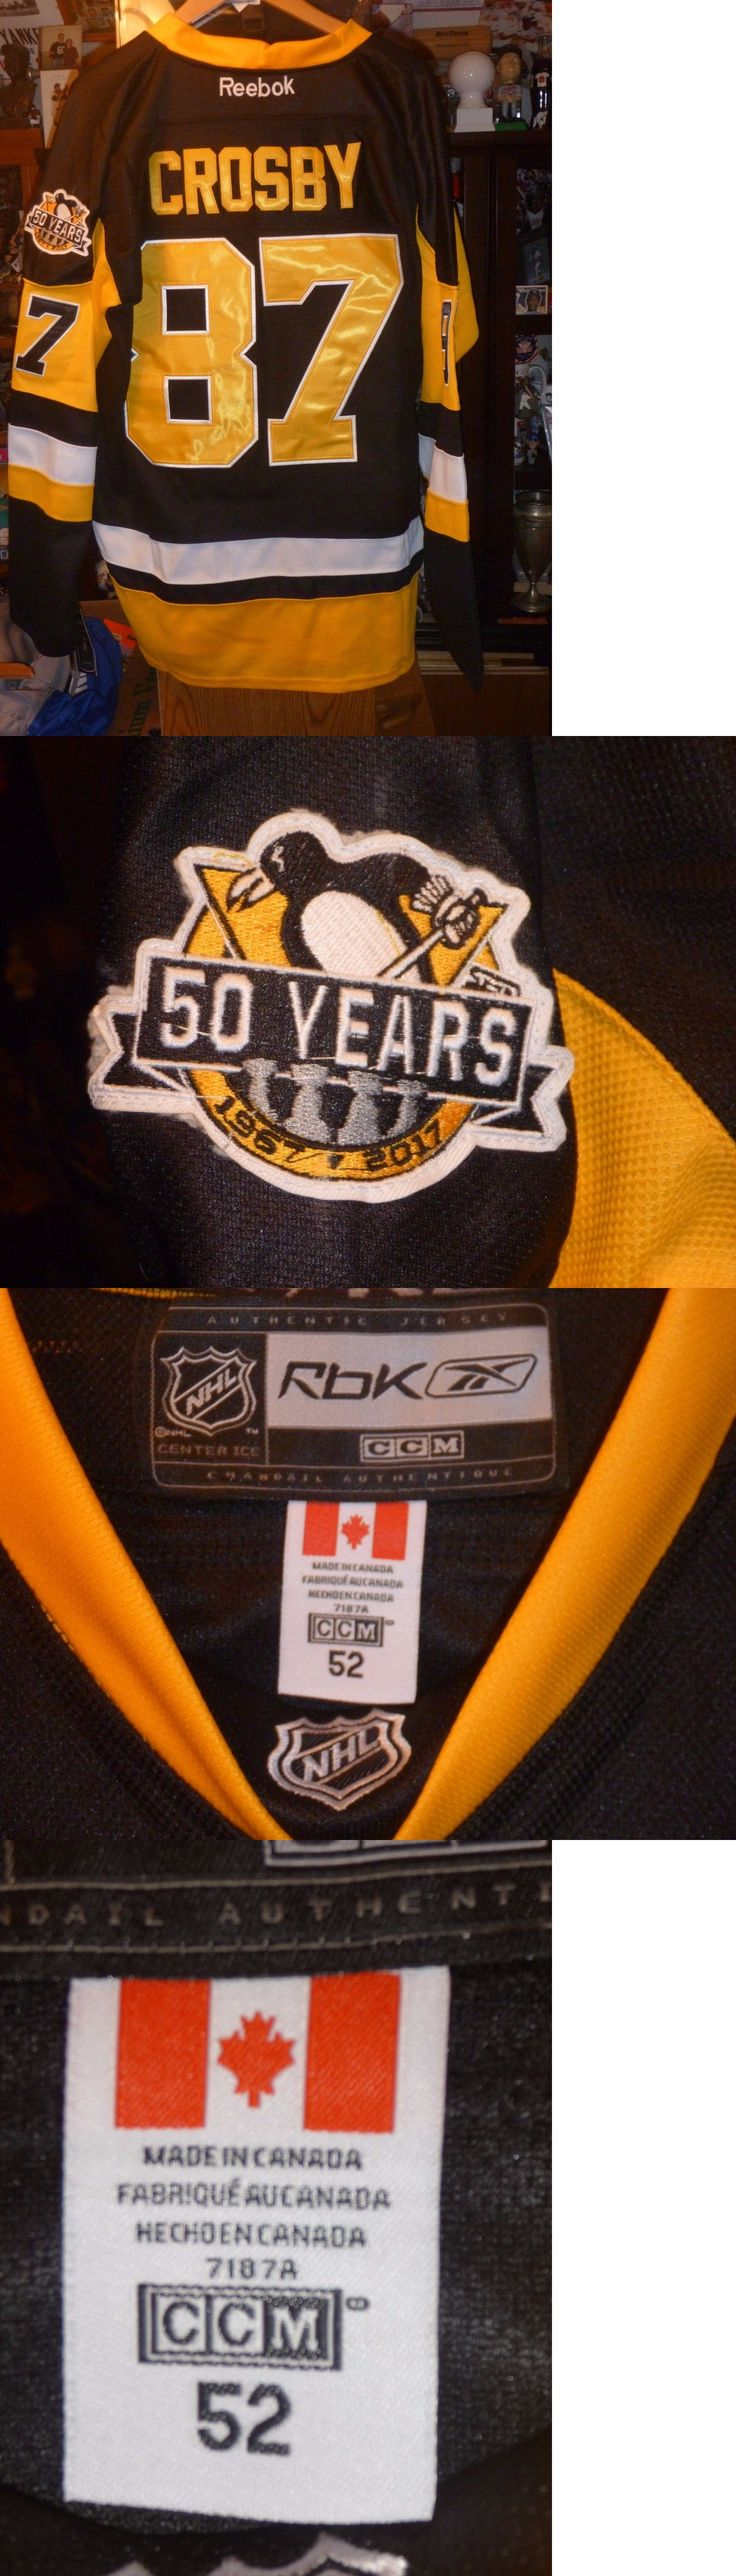 Hockey-NHL 24510: Sidney Crosby Pittsburgh Penguins 2017 Stanley Cup Finals Black Jersey 52 Xl -> BUY IT NOW ONLY: $89.99 on eBay!